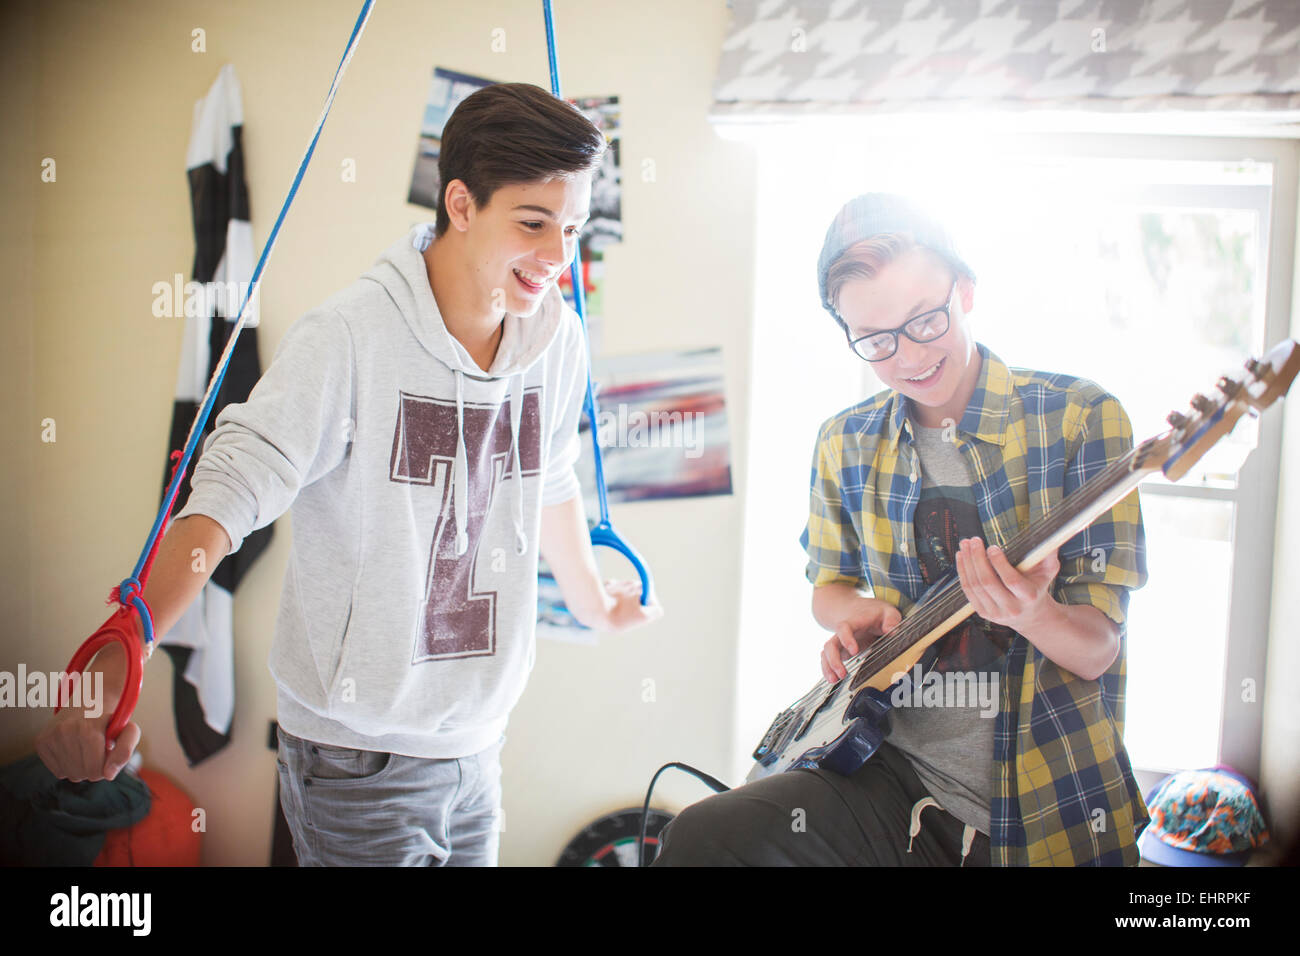 Two teenage boys having fun and playing electric guitar in room - Stock Image